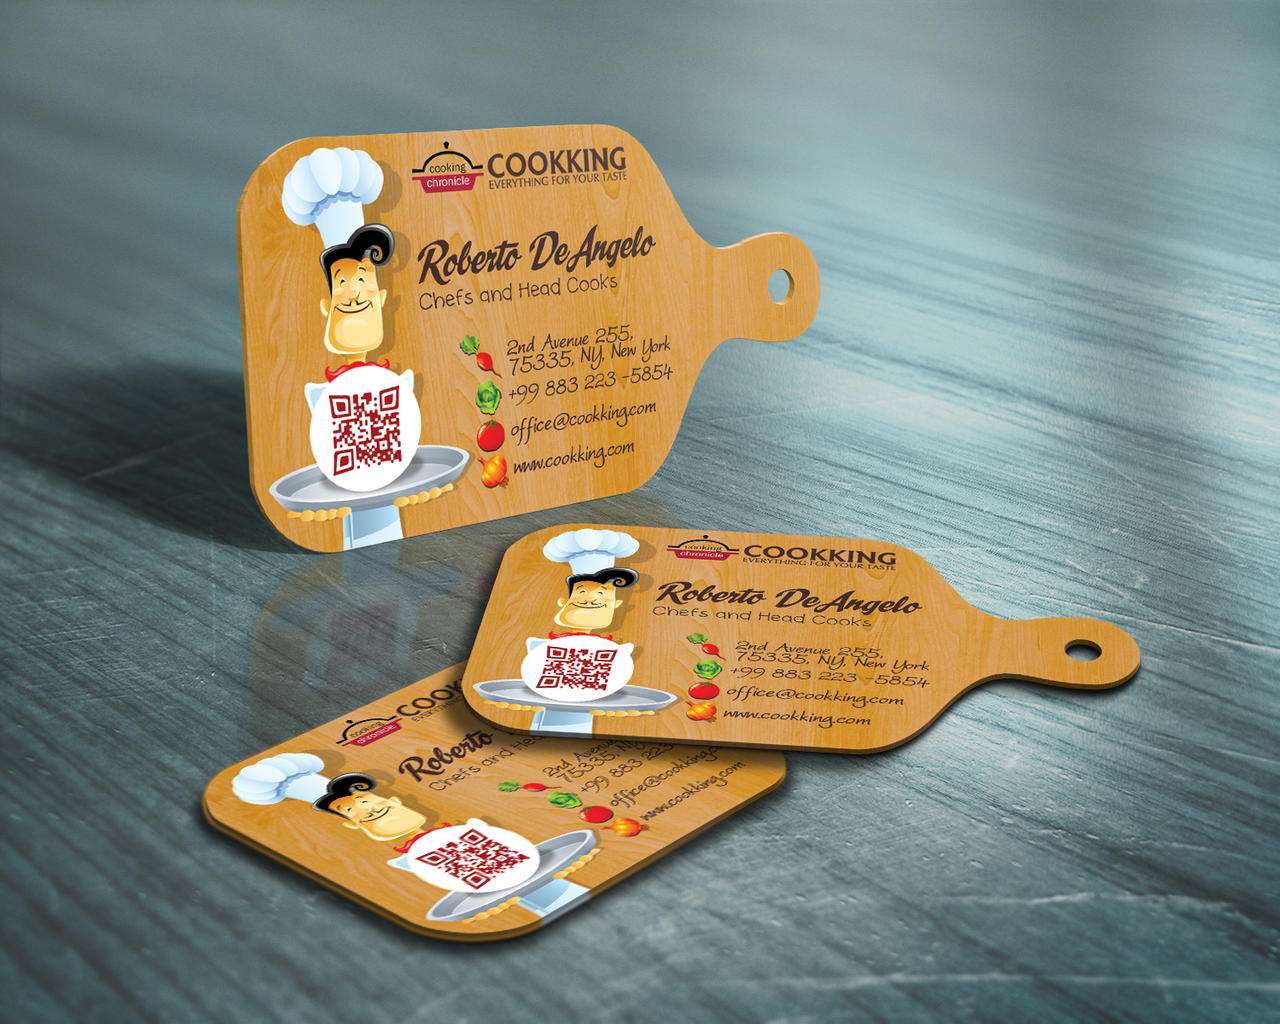 Chef cook business card by cacadoo on deviantart chef cook business card by cacadoo chef cook business card by cacadoo colourmoves